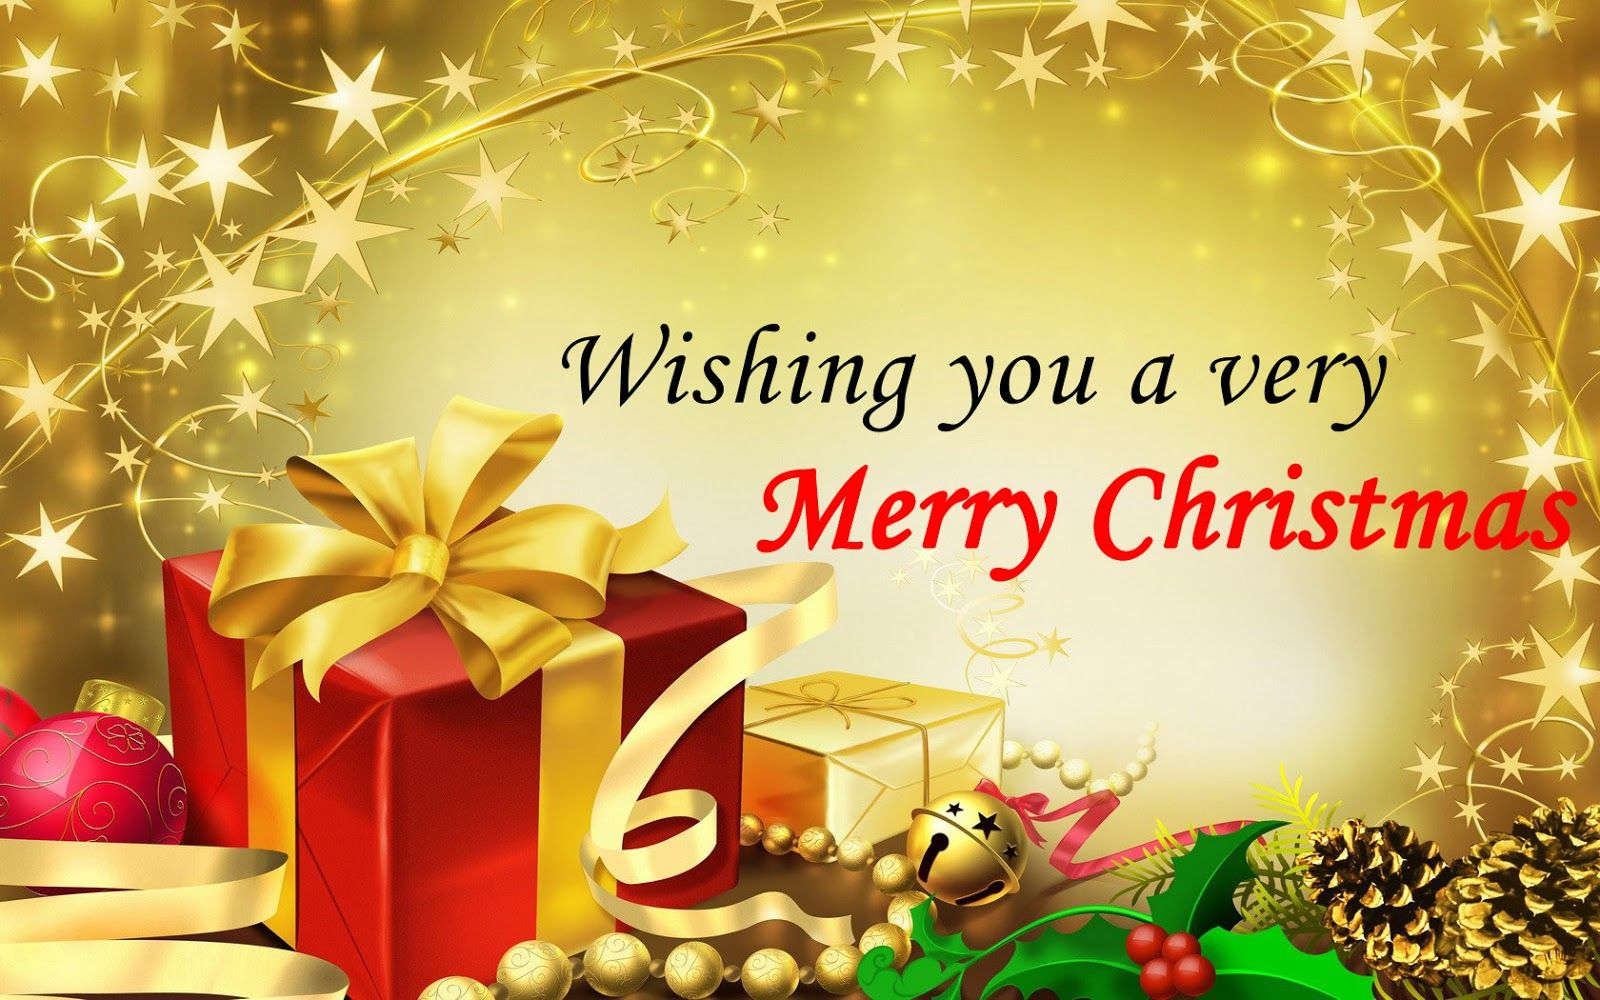 Merry-Christmas-Quotes-For-Greeting-Cards-2015-1.jpg (1600×1000)